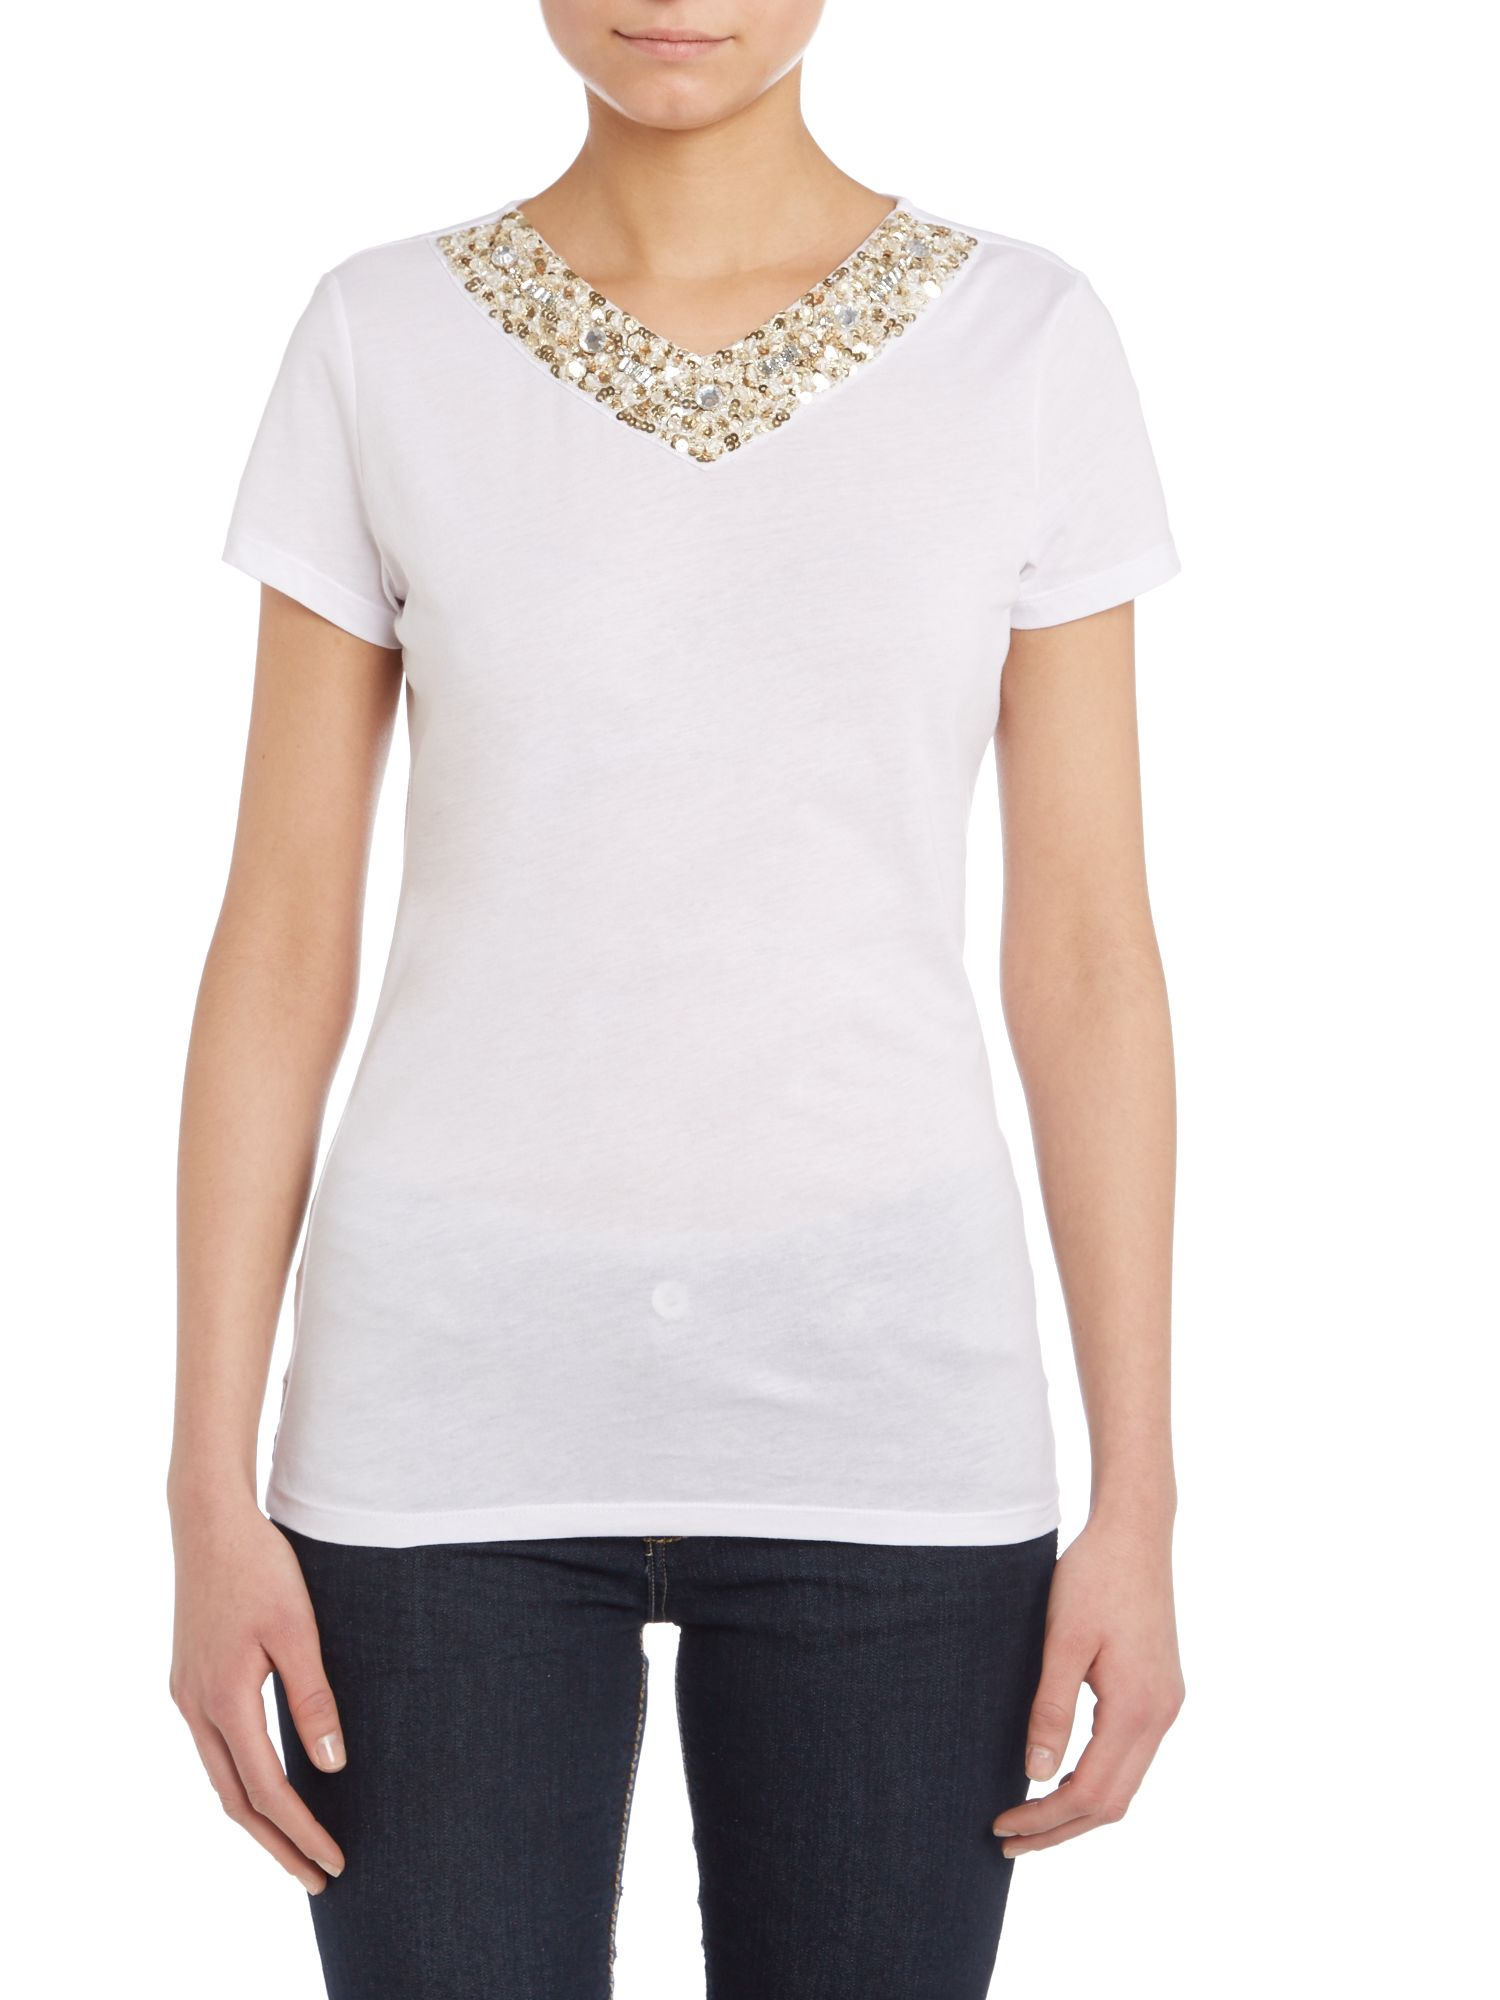 Jersey t-shirt with embellished neck